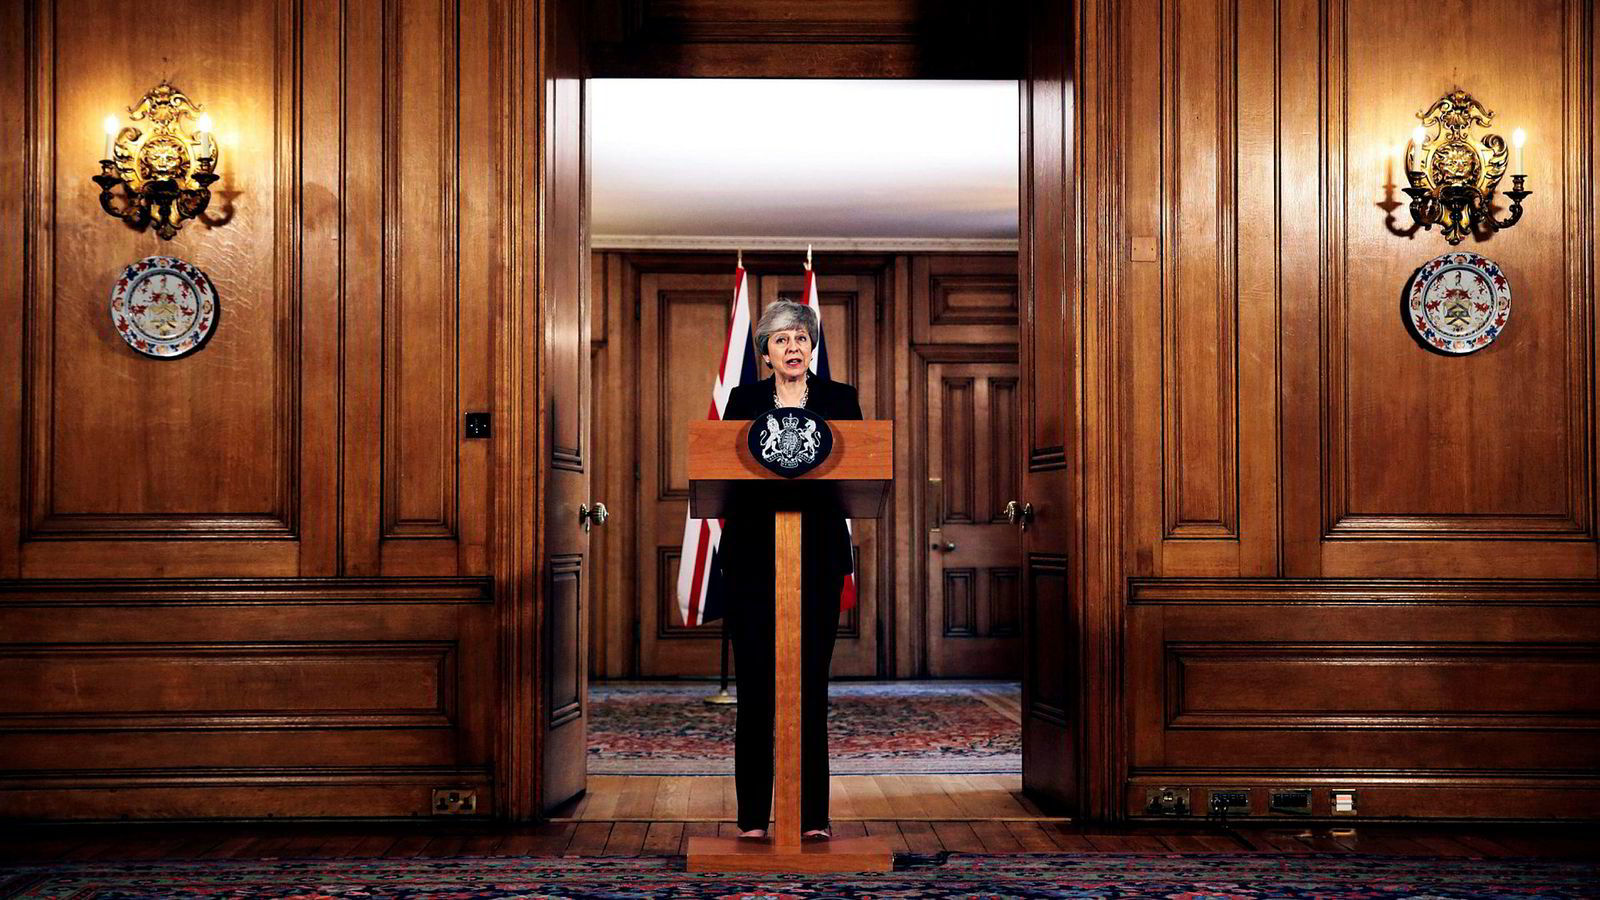 Storbritannias statsminister Theresa May gir Labour skylden for brexit-sammenbruddet.